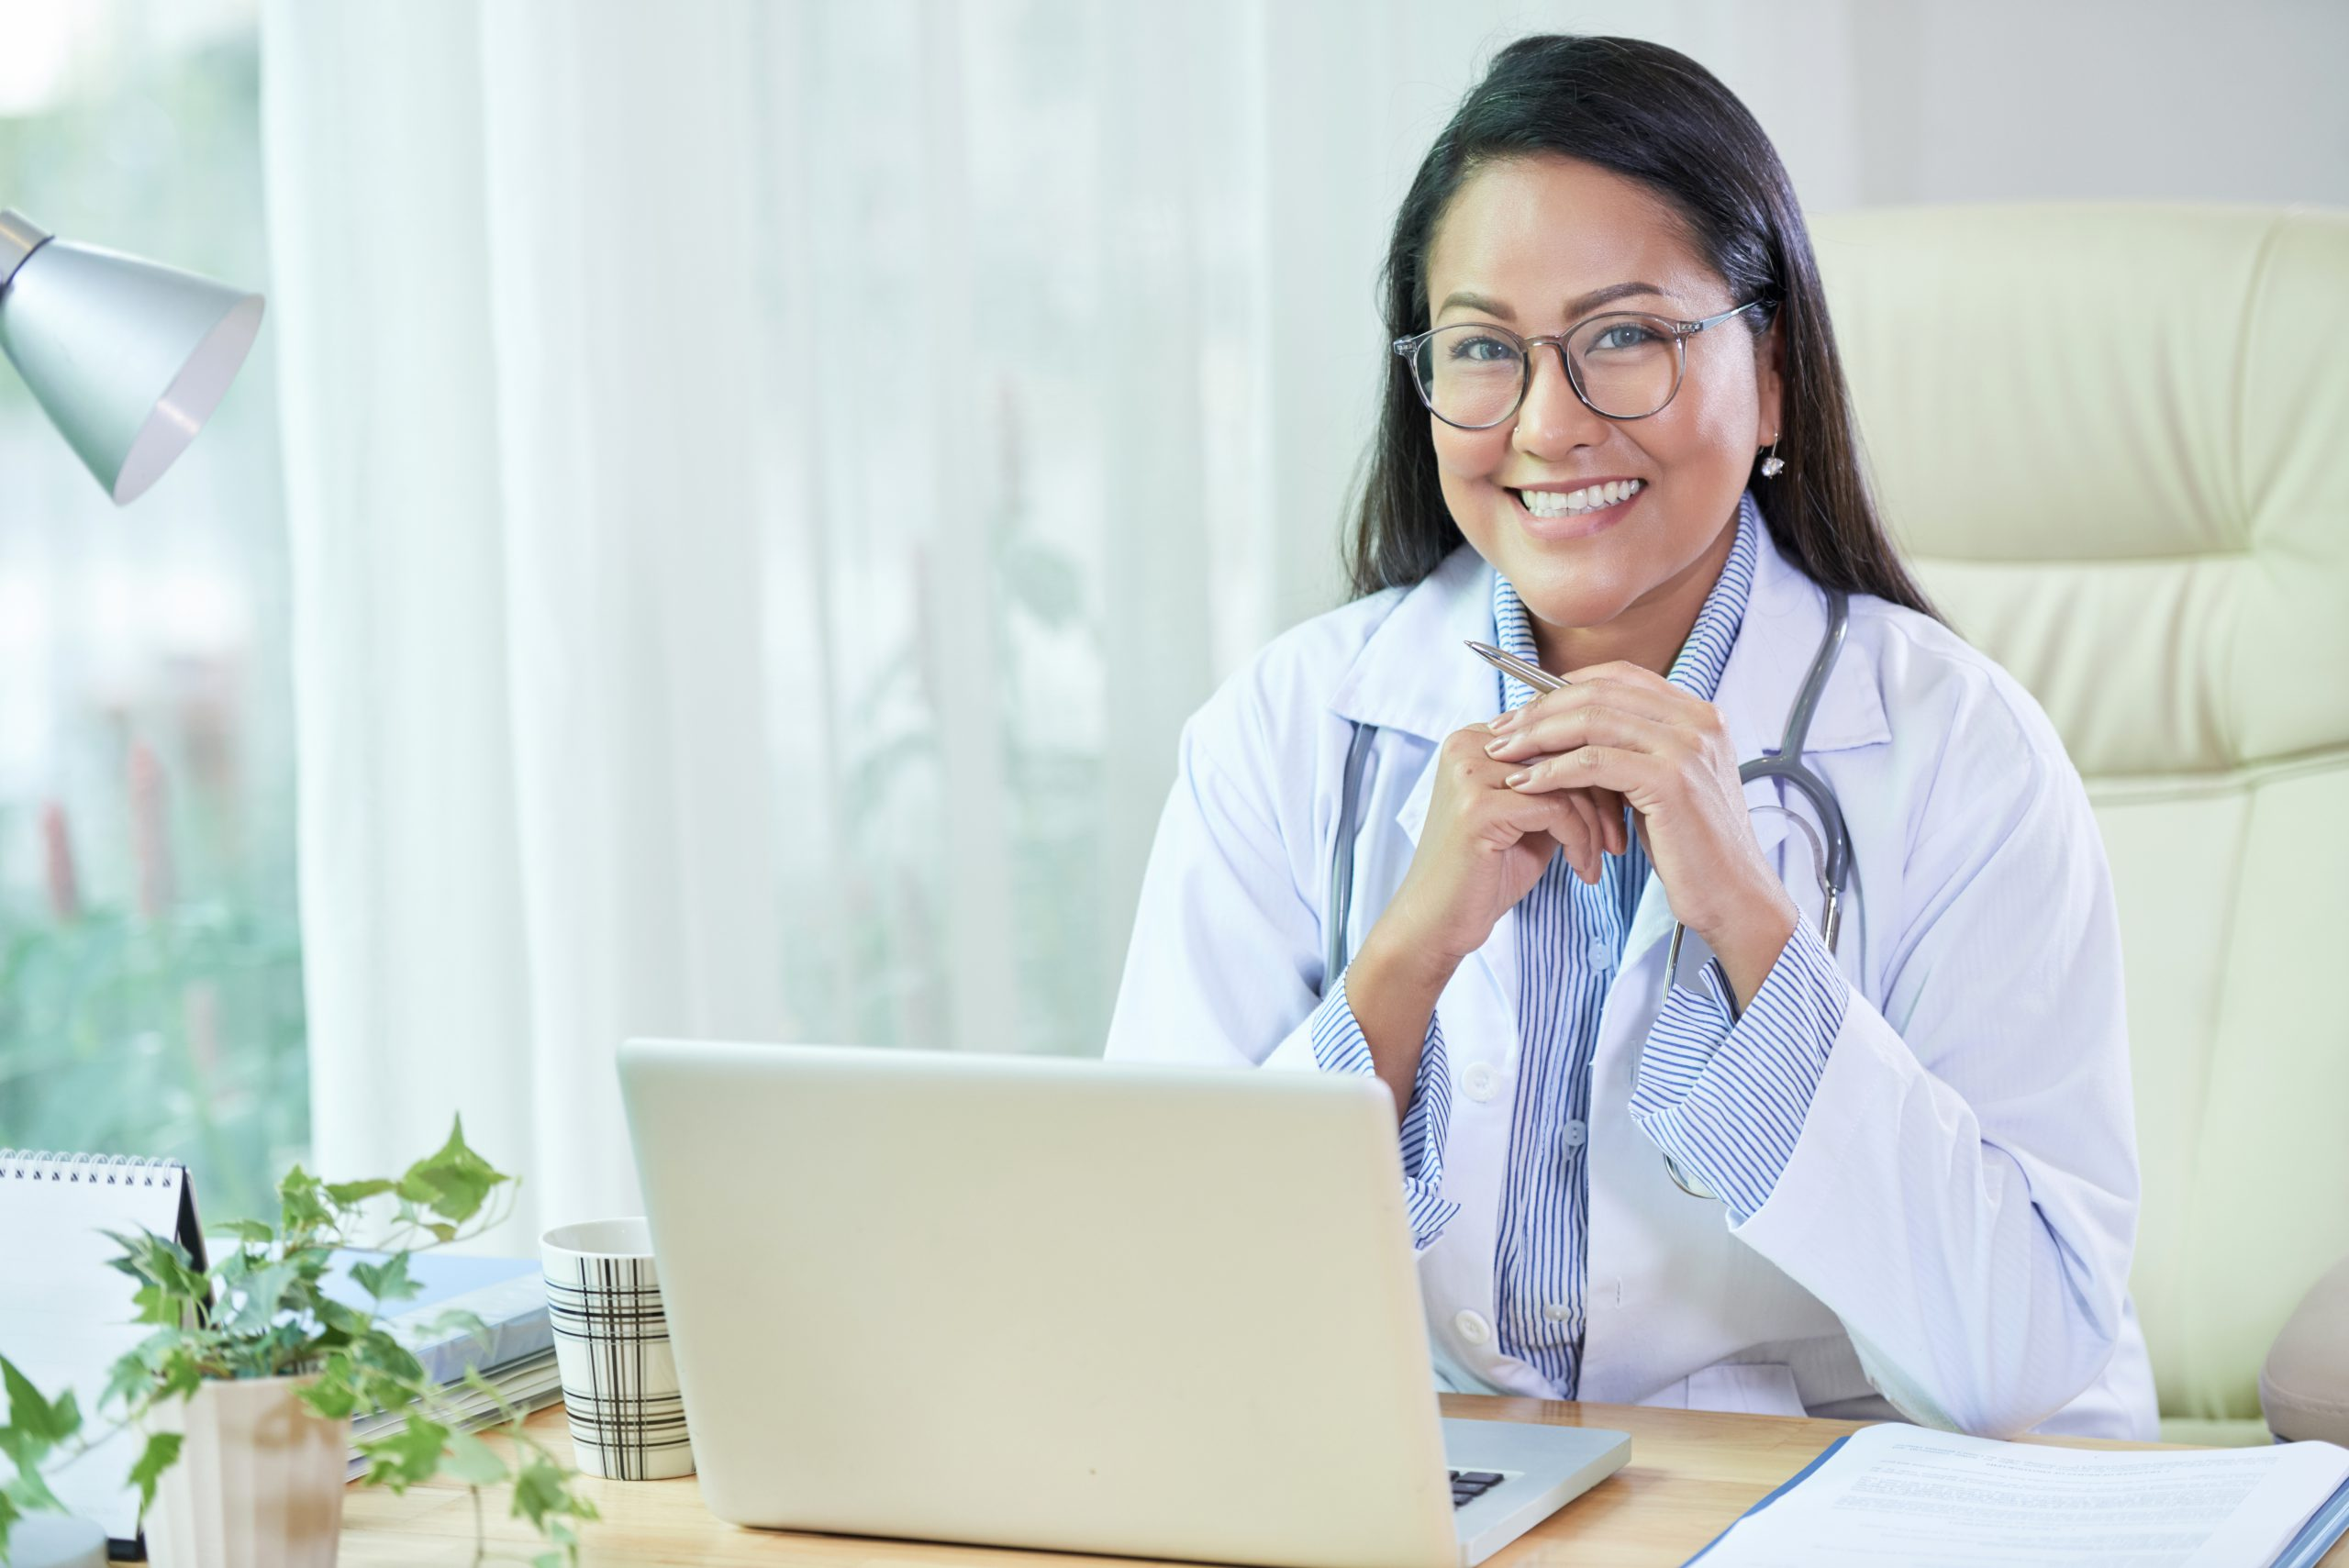 Smiling female gynecologist ready for fibroids patient appointment